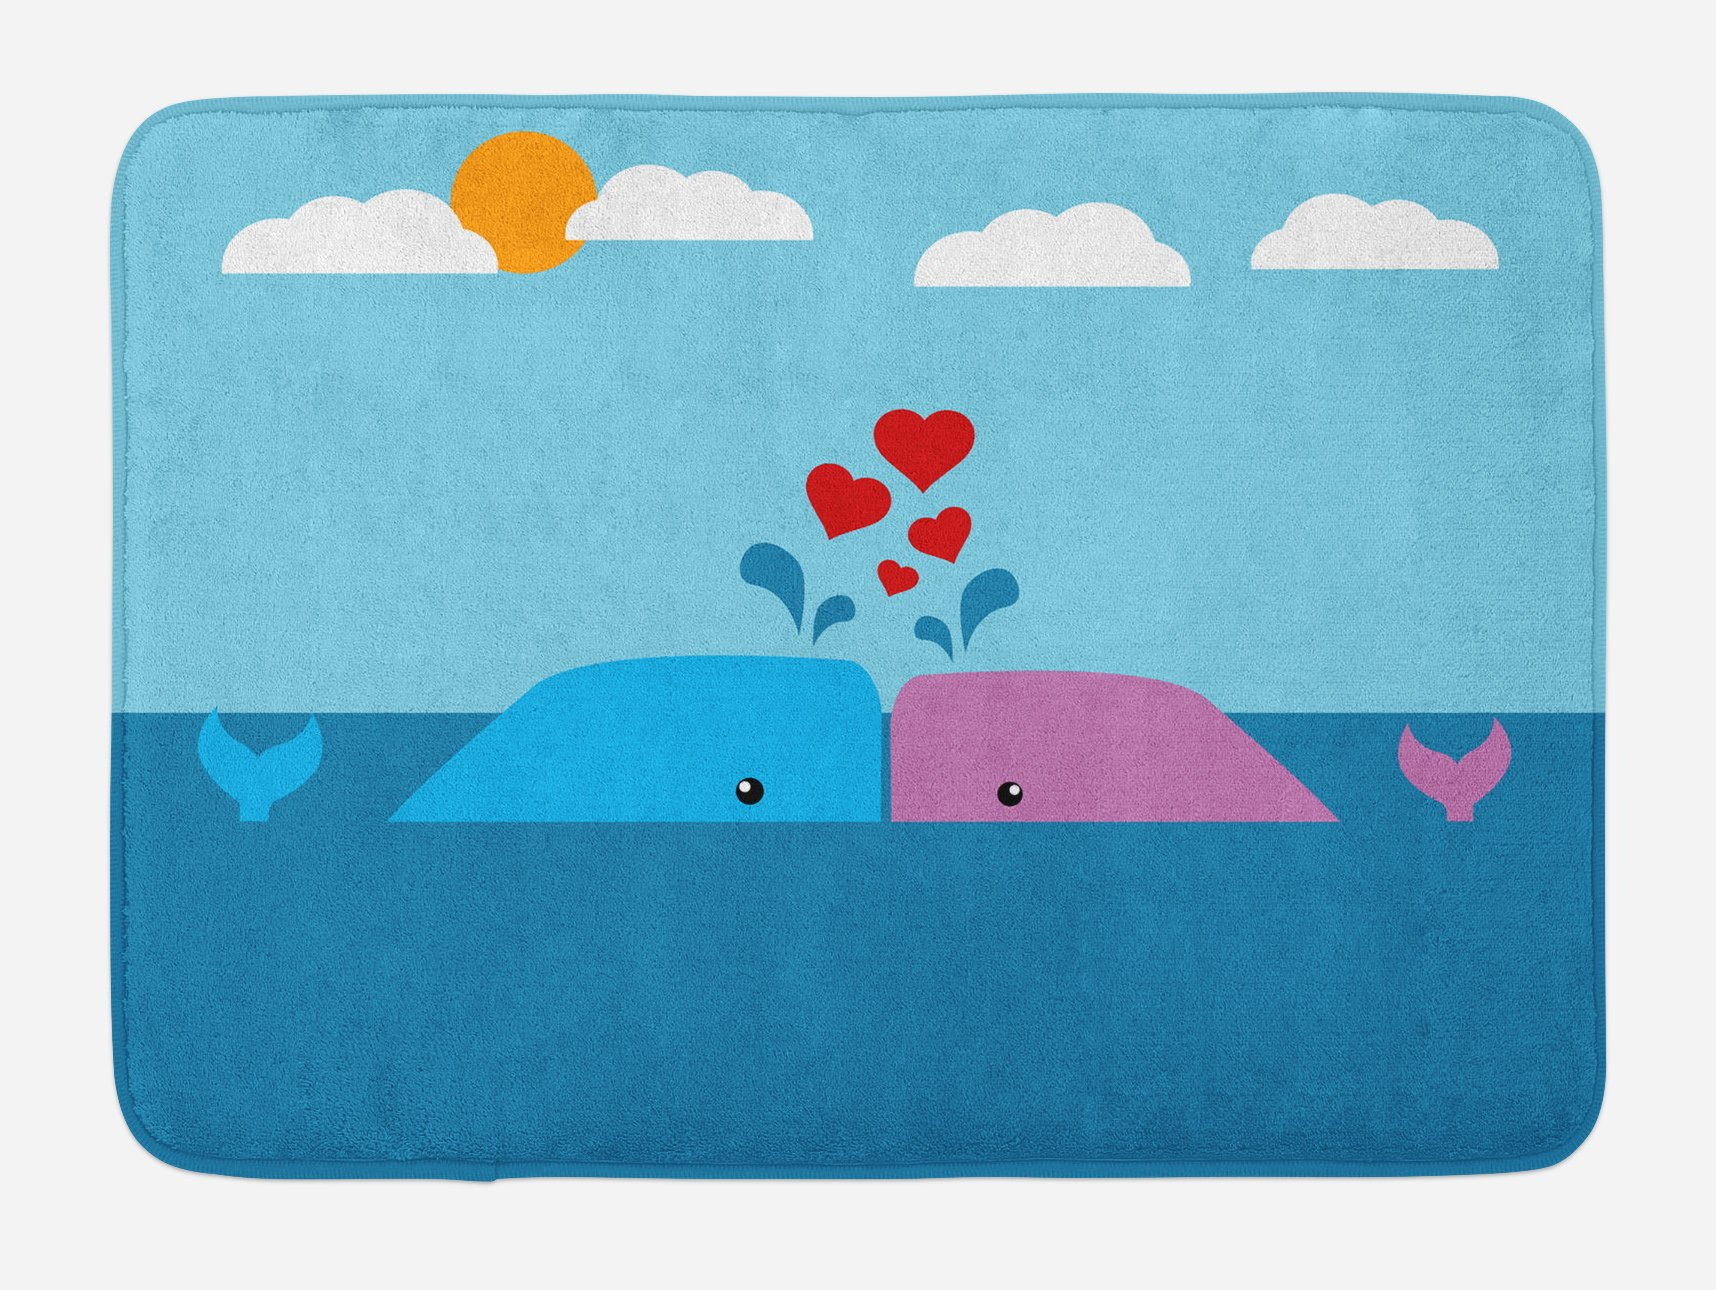 Ambesonne Whale Bath Mat, Art of Romantic Love Valentine's Whales in Ocean with Sun and Clouds Animal Fun, Plush Bathroom Decor Mat with Non Slip Backing, 29.5 W X 17.5 W Inches, Blue and Pink